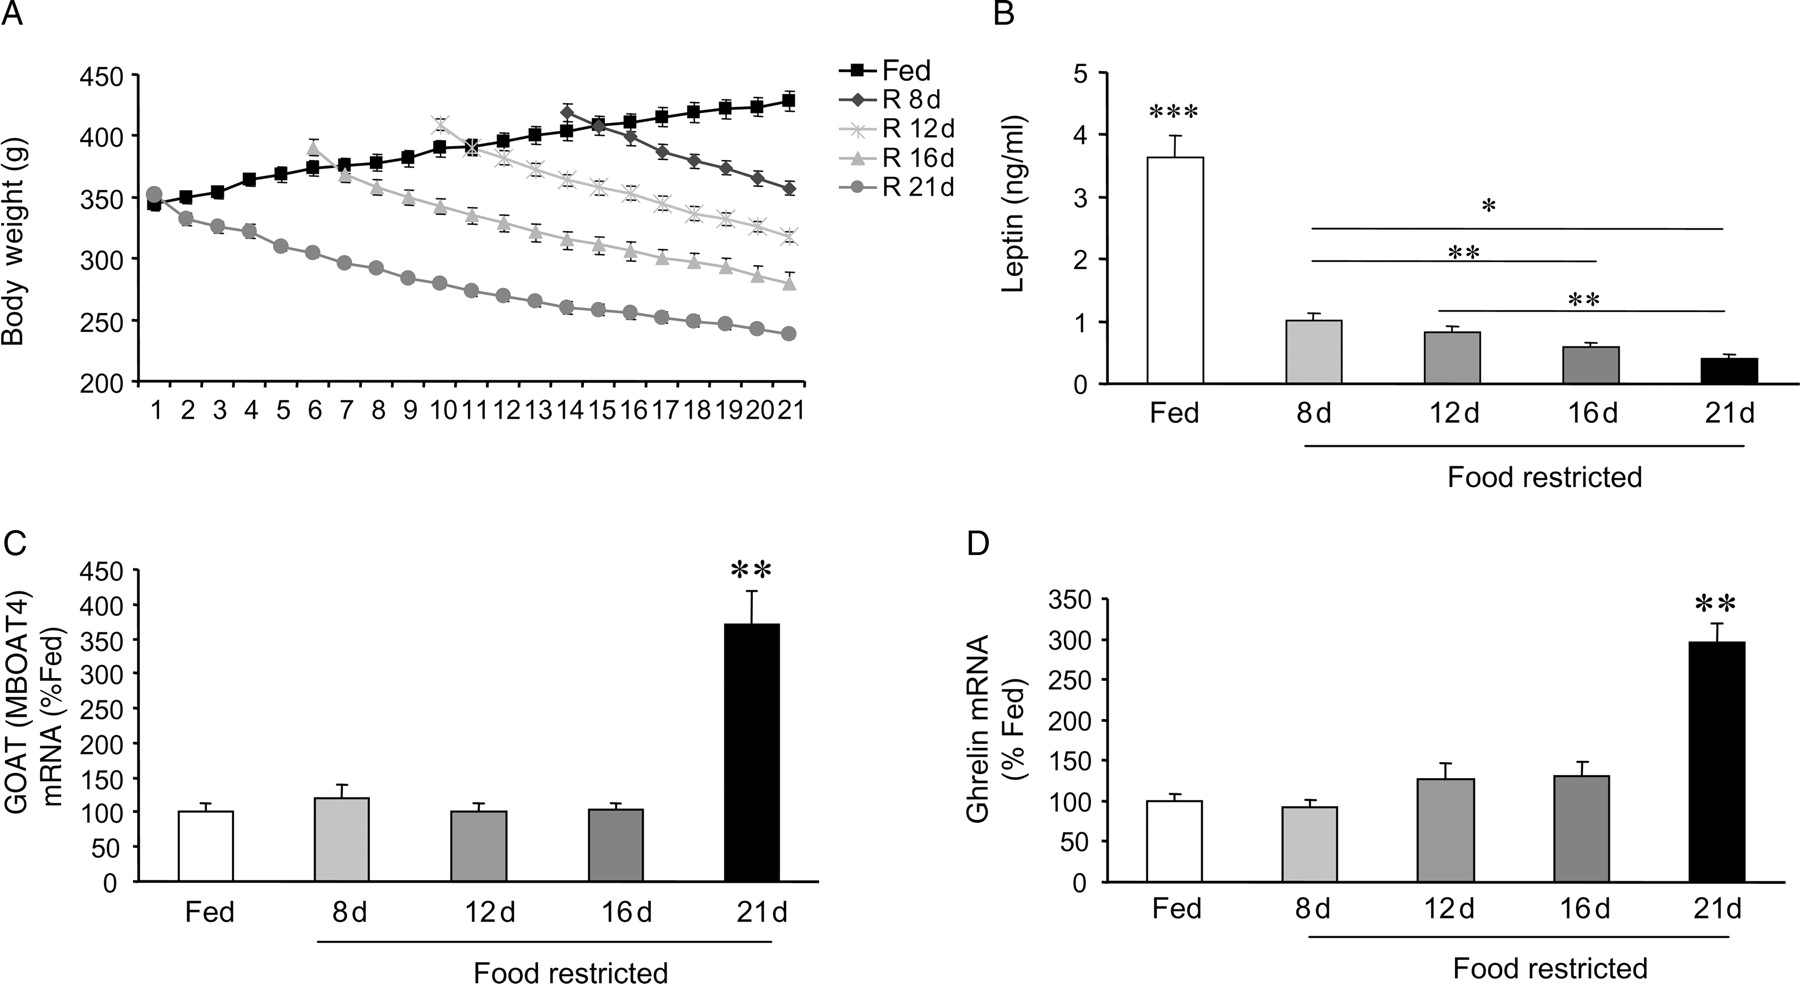 hight resolution of  a body weight b plasma leptin levels c goat and d ghrelin mrna expression in the stomach mucosa of fed and food restricted rats at the described